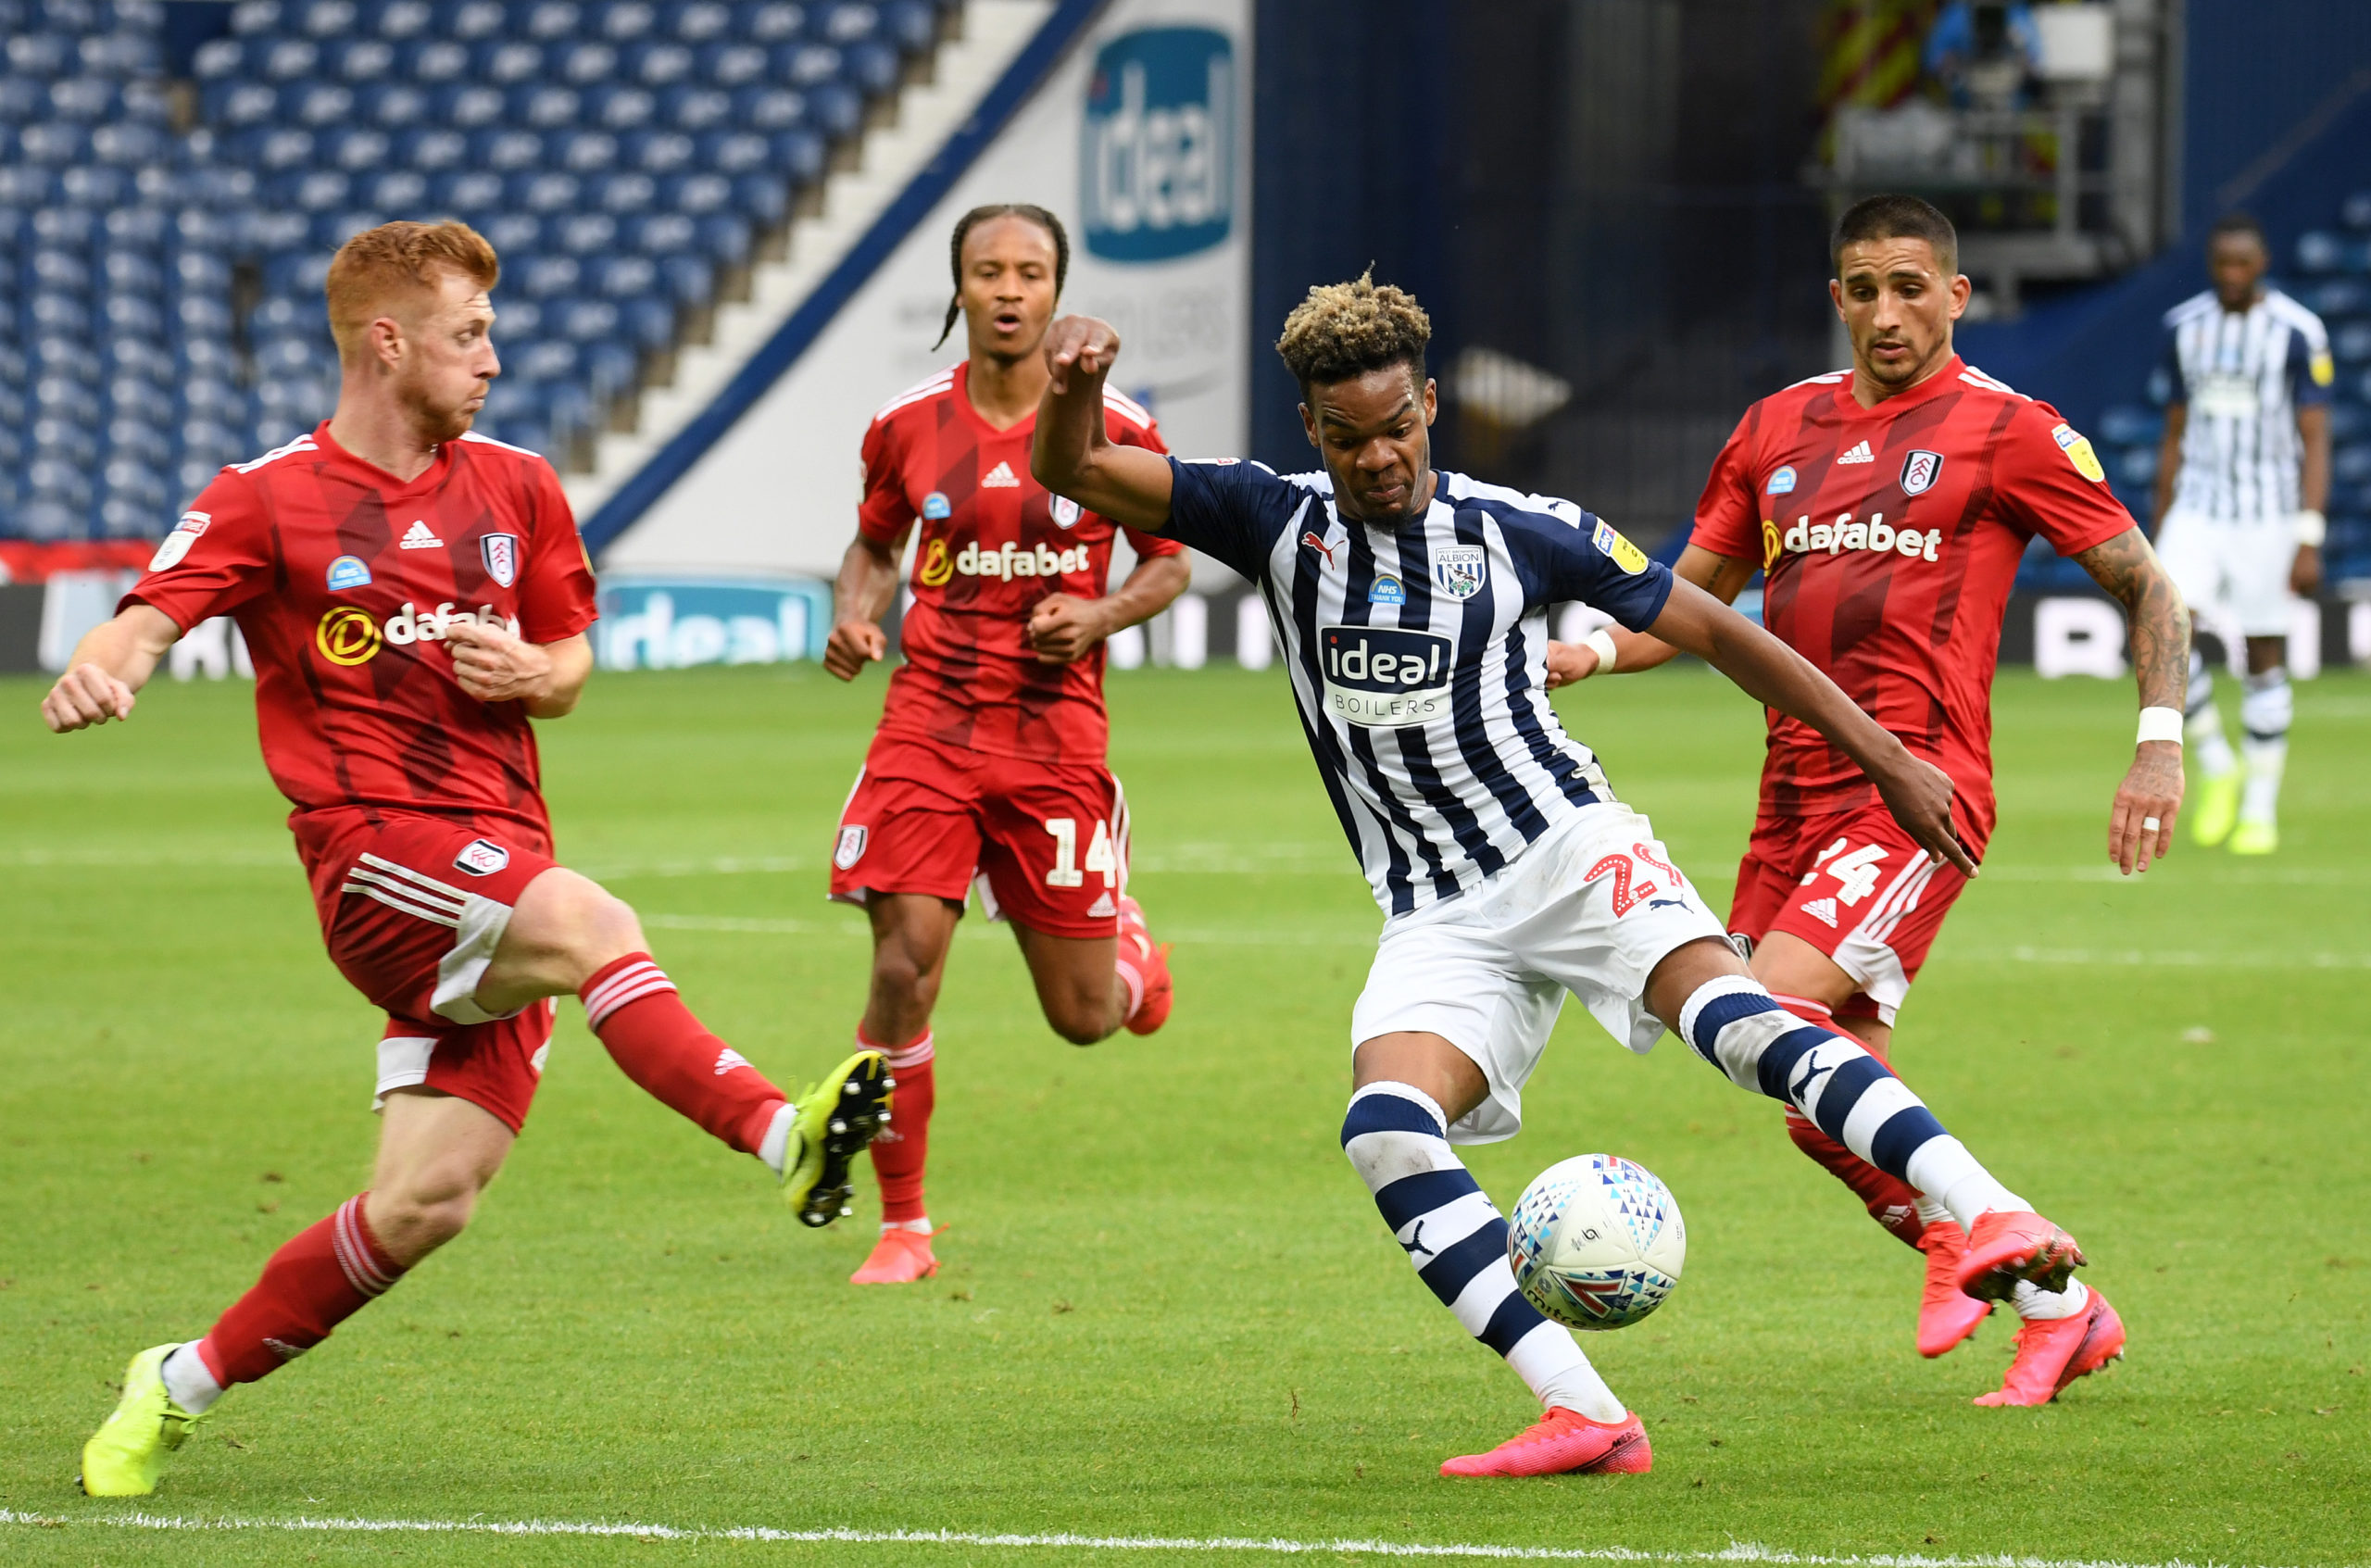 West Ham United accept West Brom Albion's bid for Grady Diangana